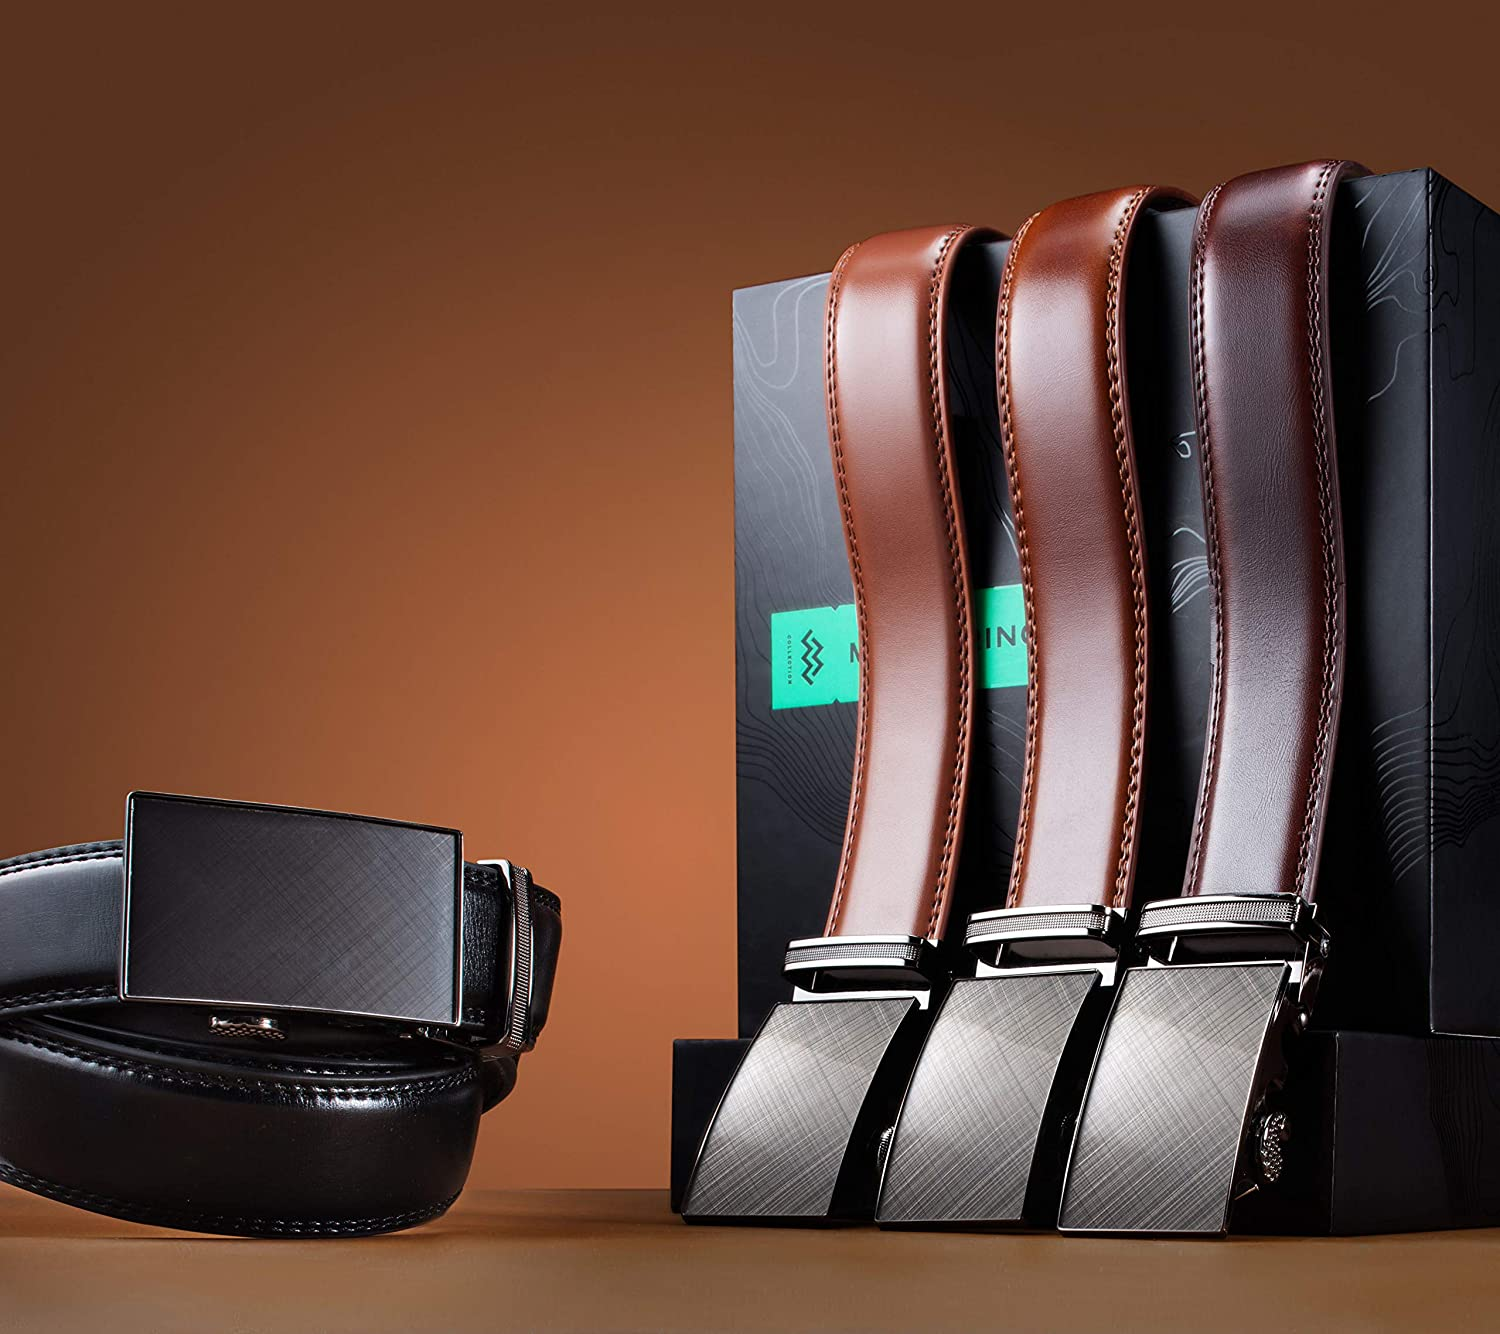 Marino Mens Genuine Leather Ratchet Dress Belt With Automatic Buckle Enclosed in an Elegant Gift Box